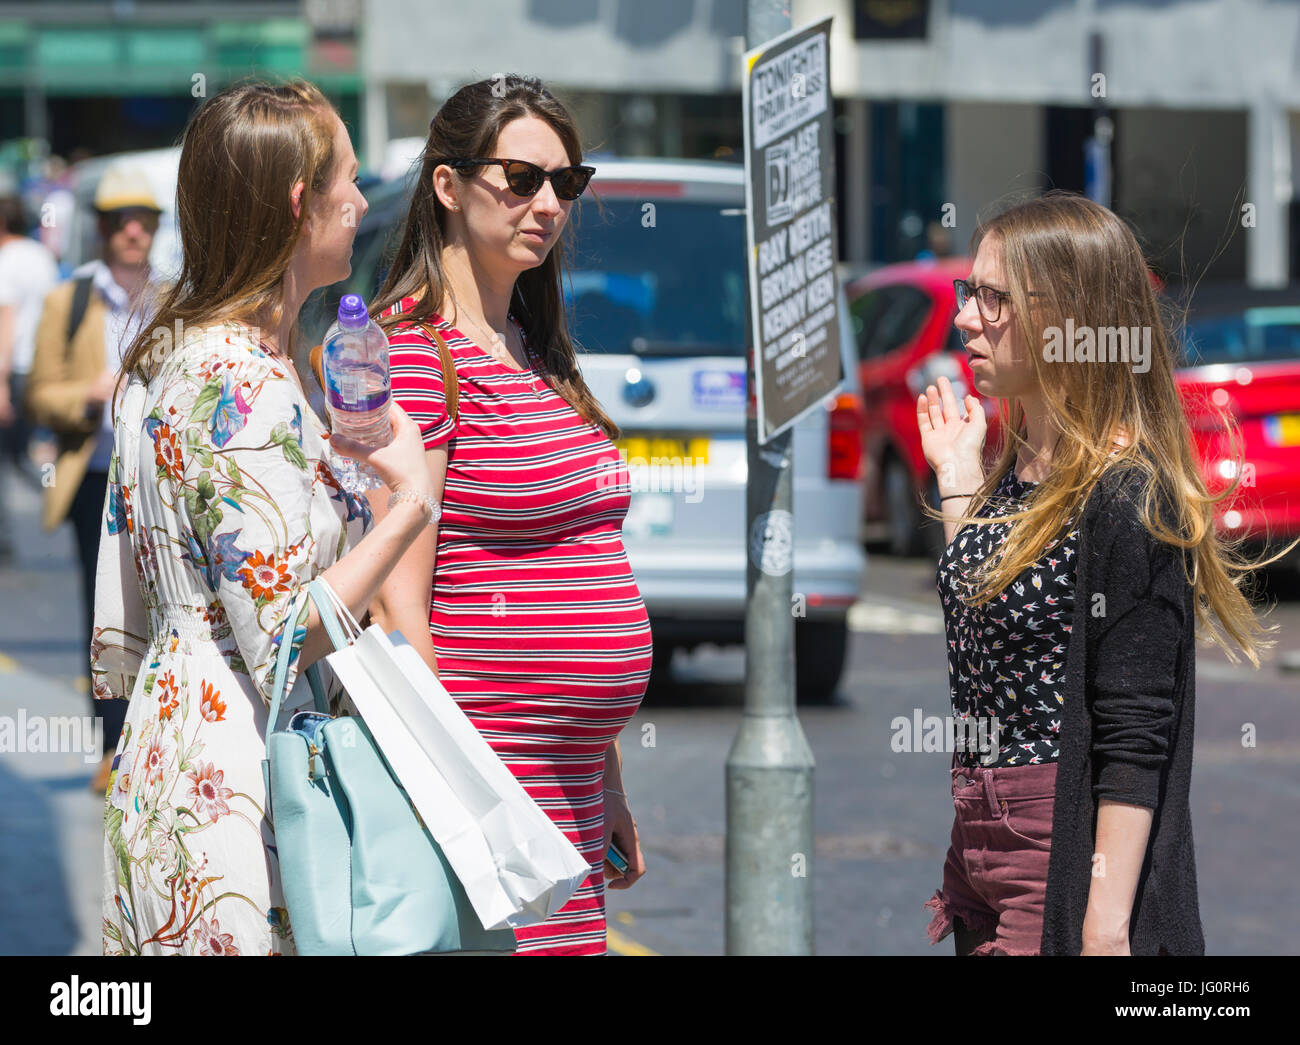 Pregnant woman standing in a city speaking to female friends. - Stock Image